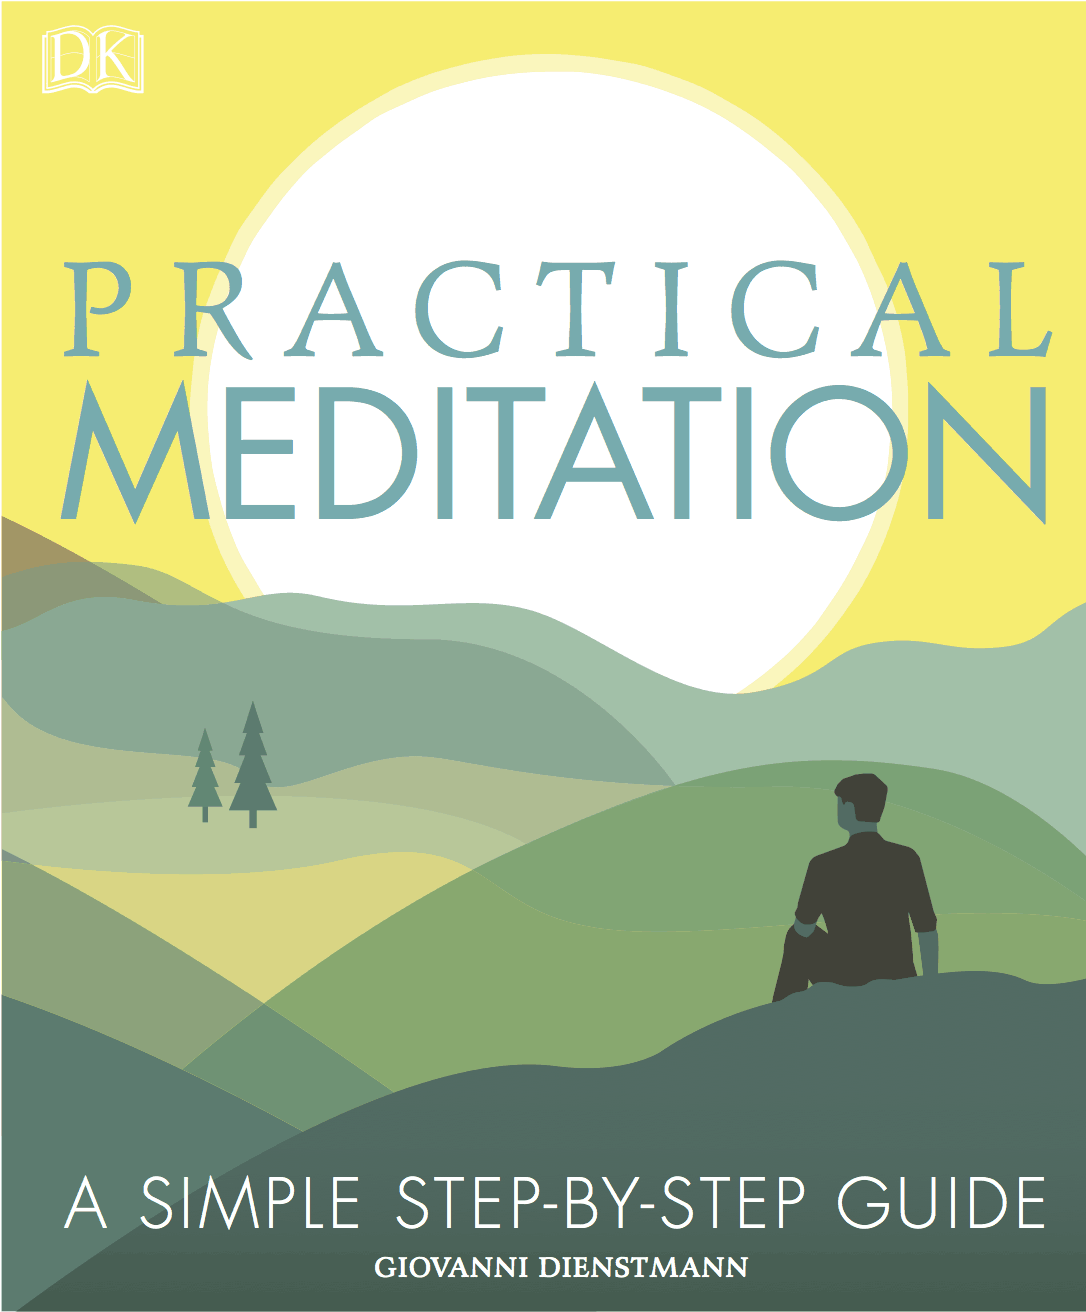 Practical Meditation Book Giovanni Dienstmann